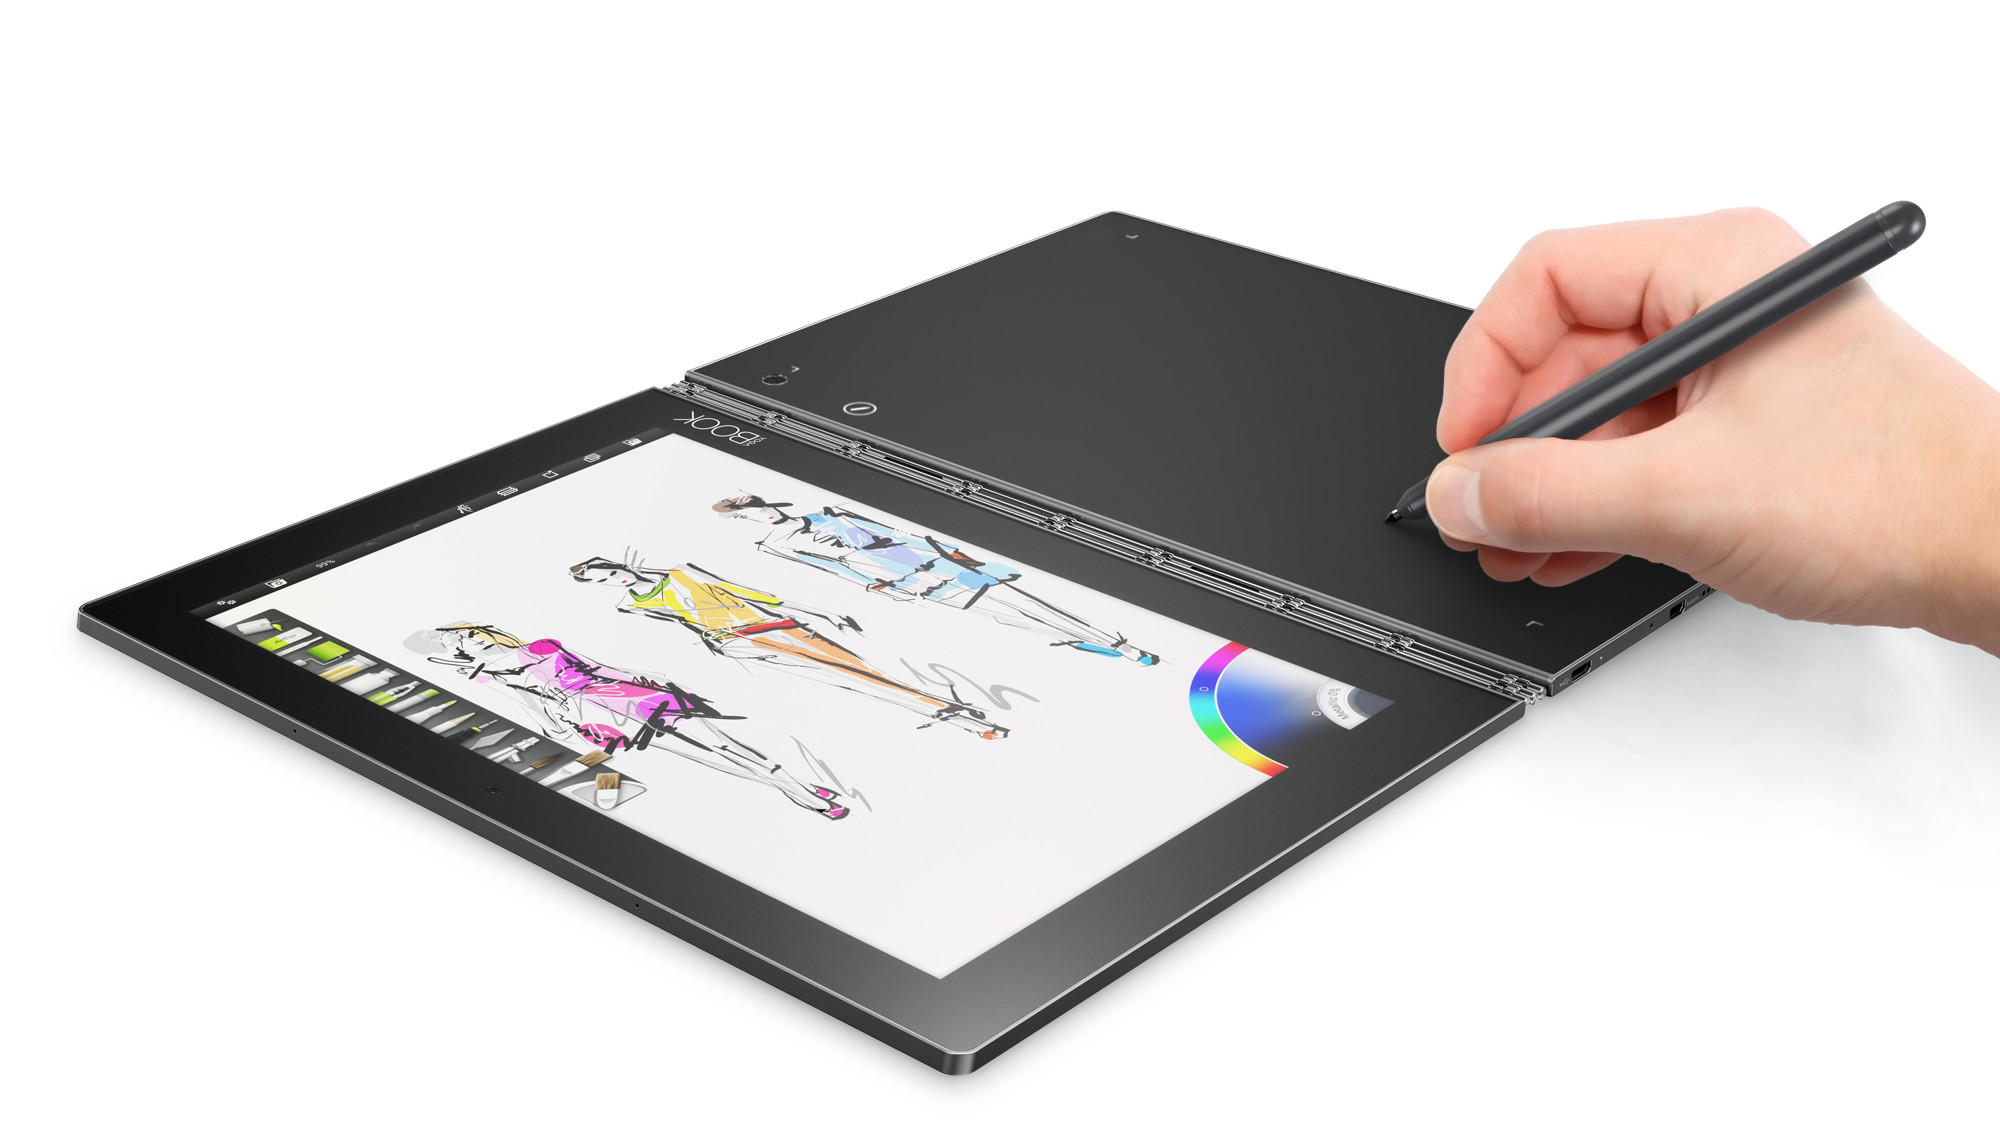 12_yoga_book_painting_creat_mode_portrait_drawing_pad.png